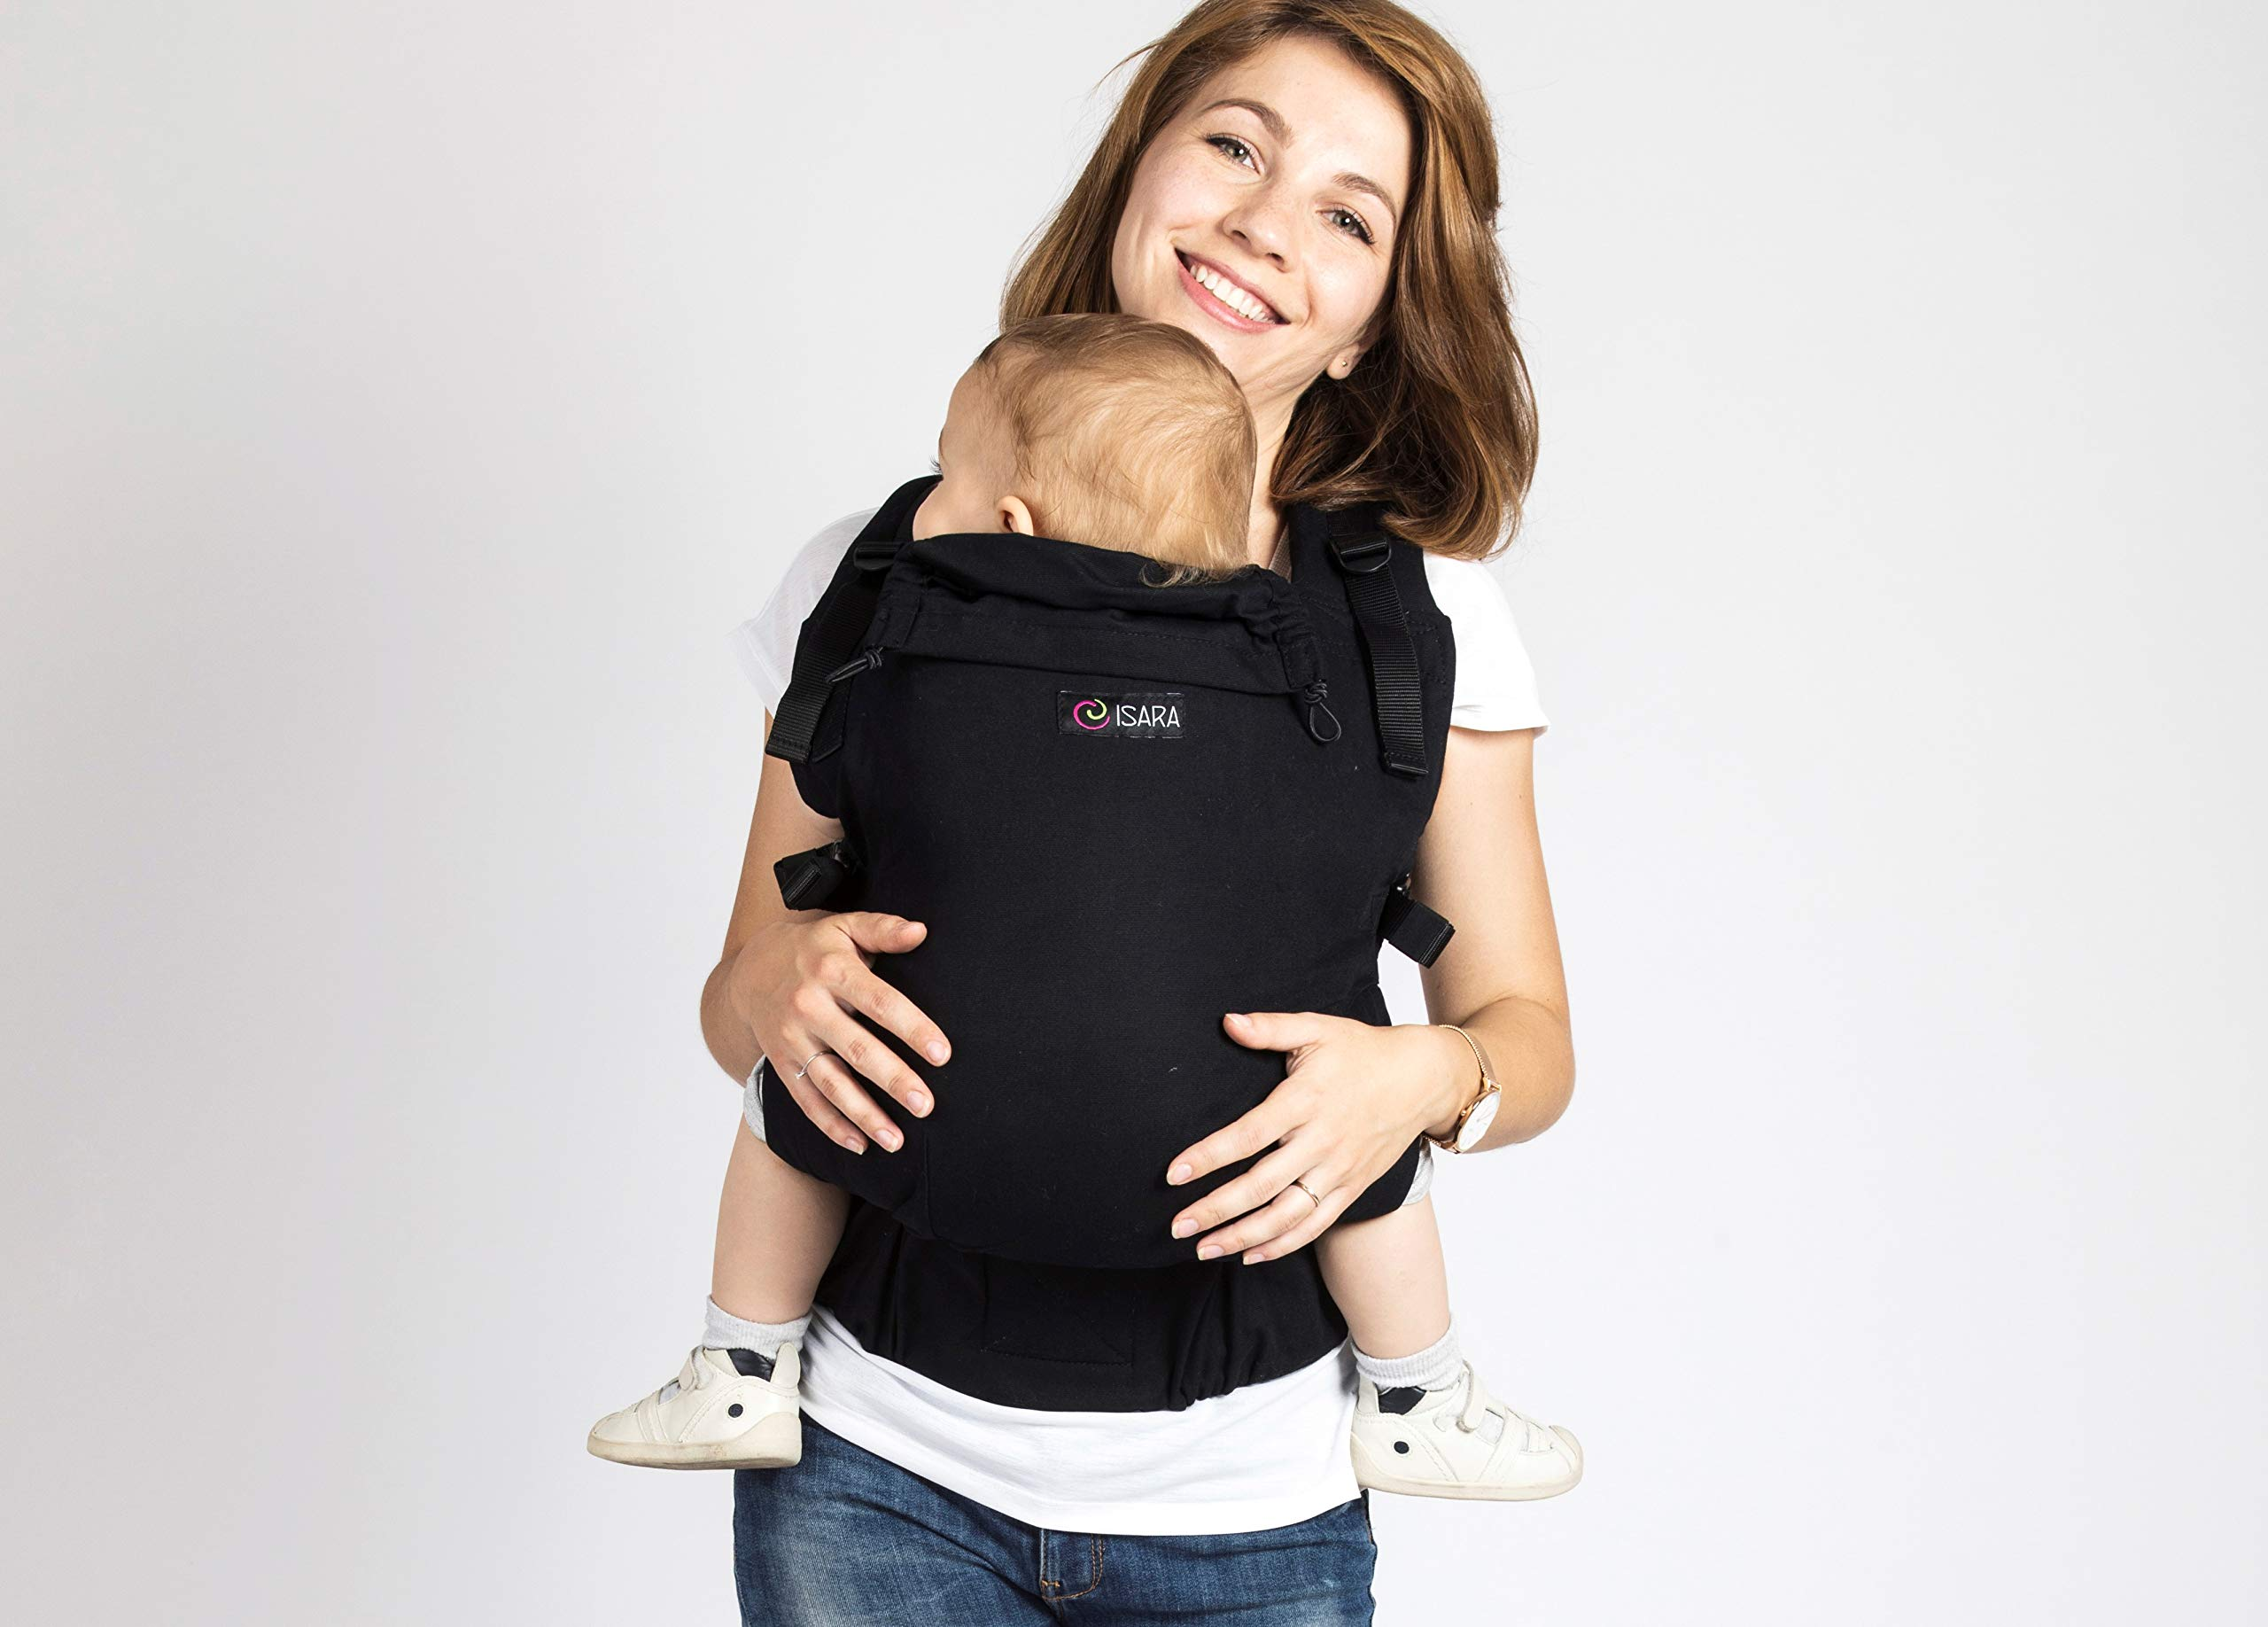 ISARA V3 Black-a-Porter, Toddler Size  ISARA baby carriers